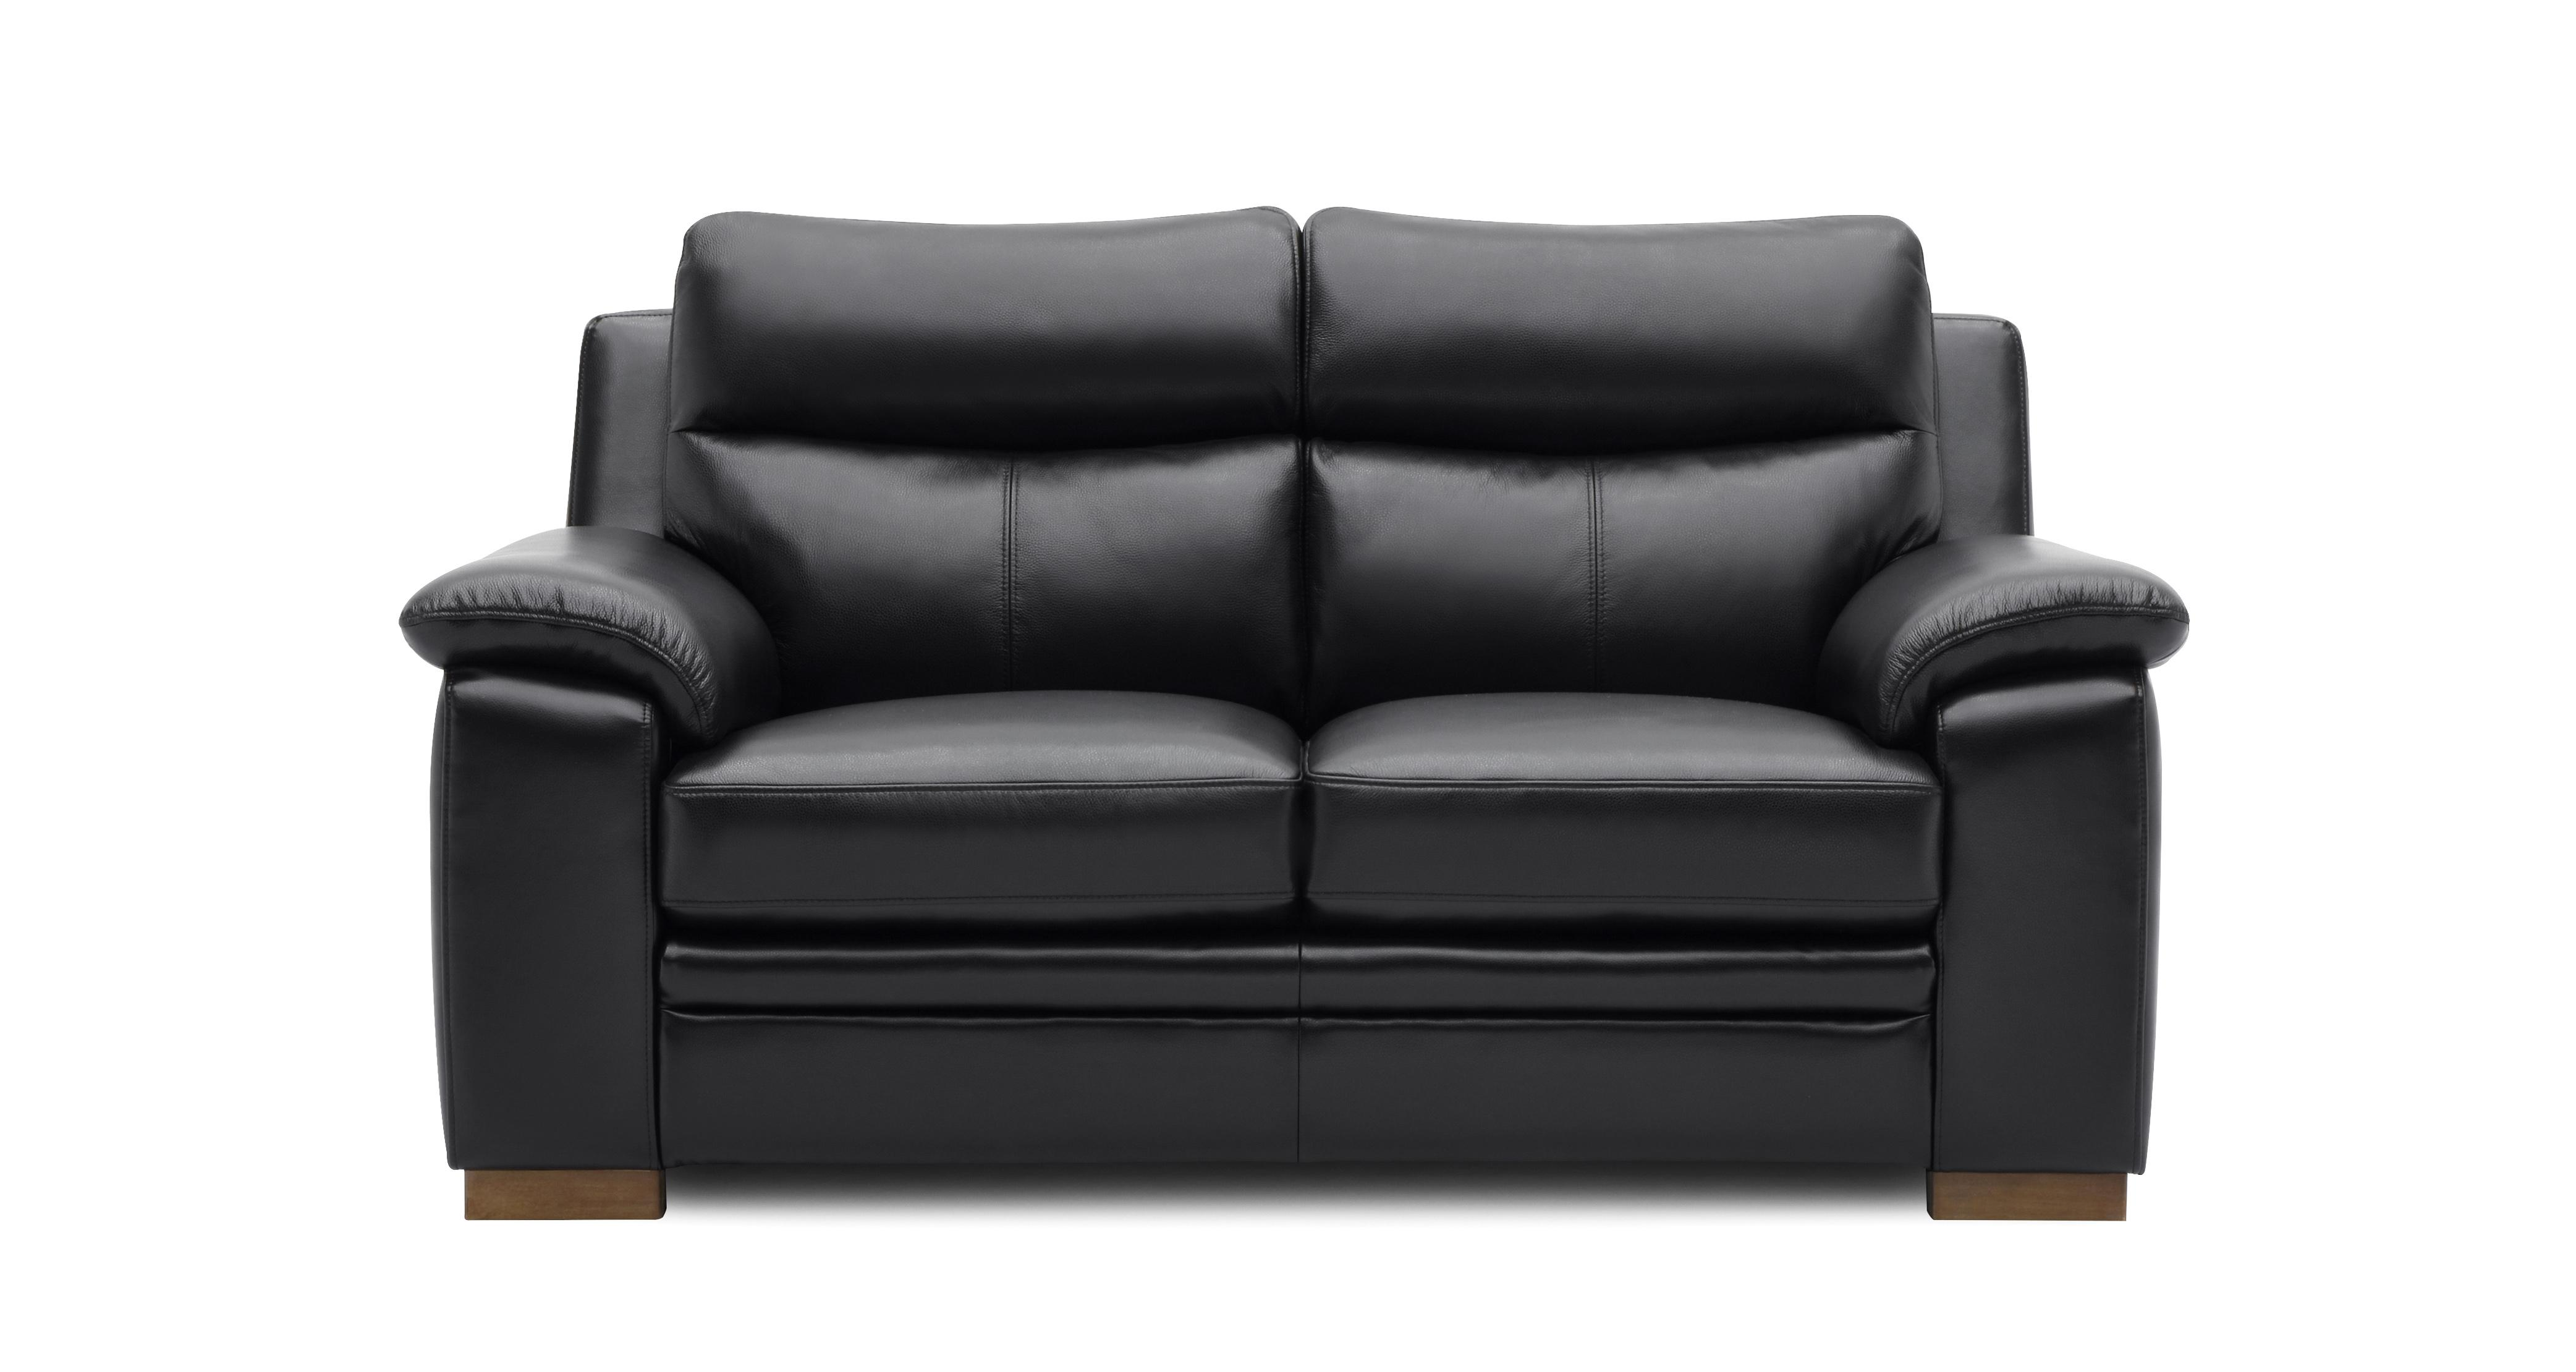 2 Seater Leather Sofas Small Modern Sofas Dfs